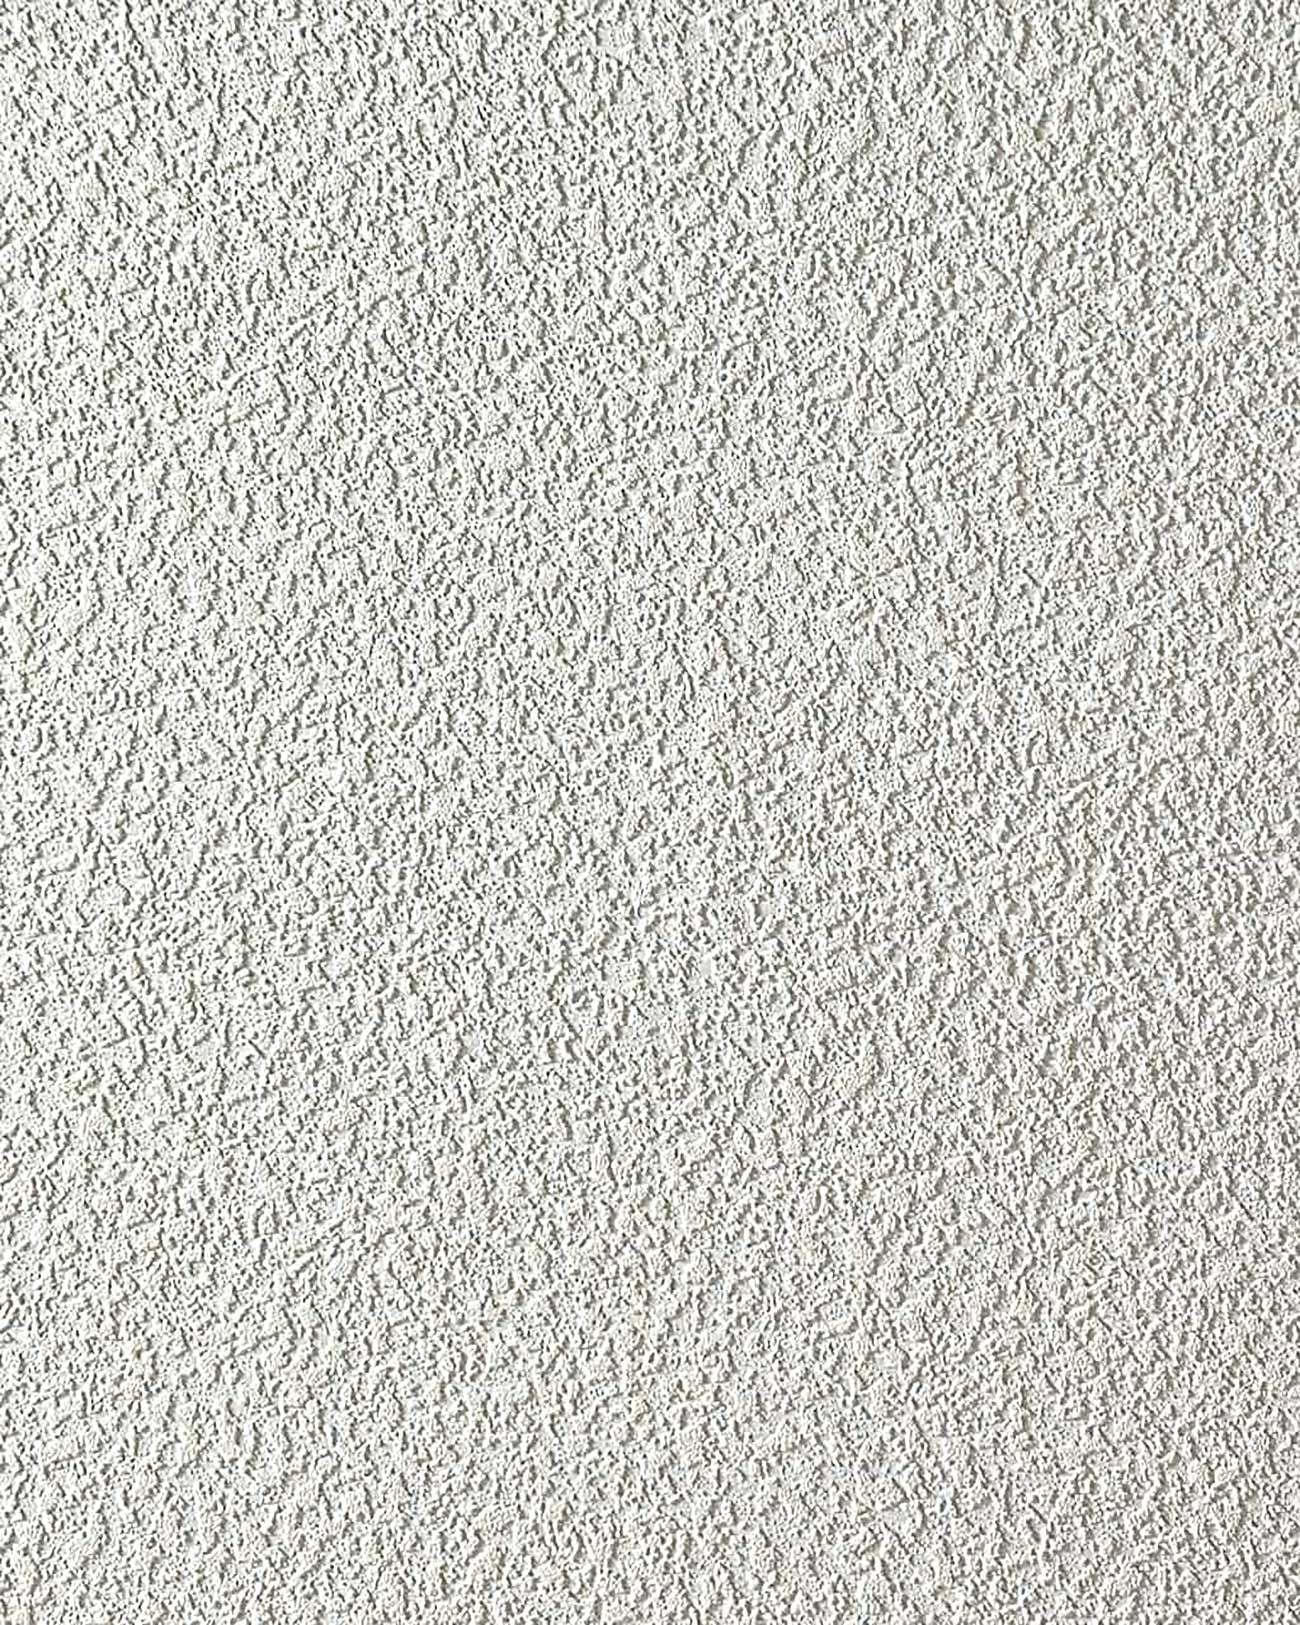 Vinyl Tapeten Auf Raufaser : White Textured Plaster Wallpaper